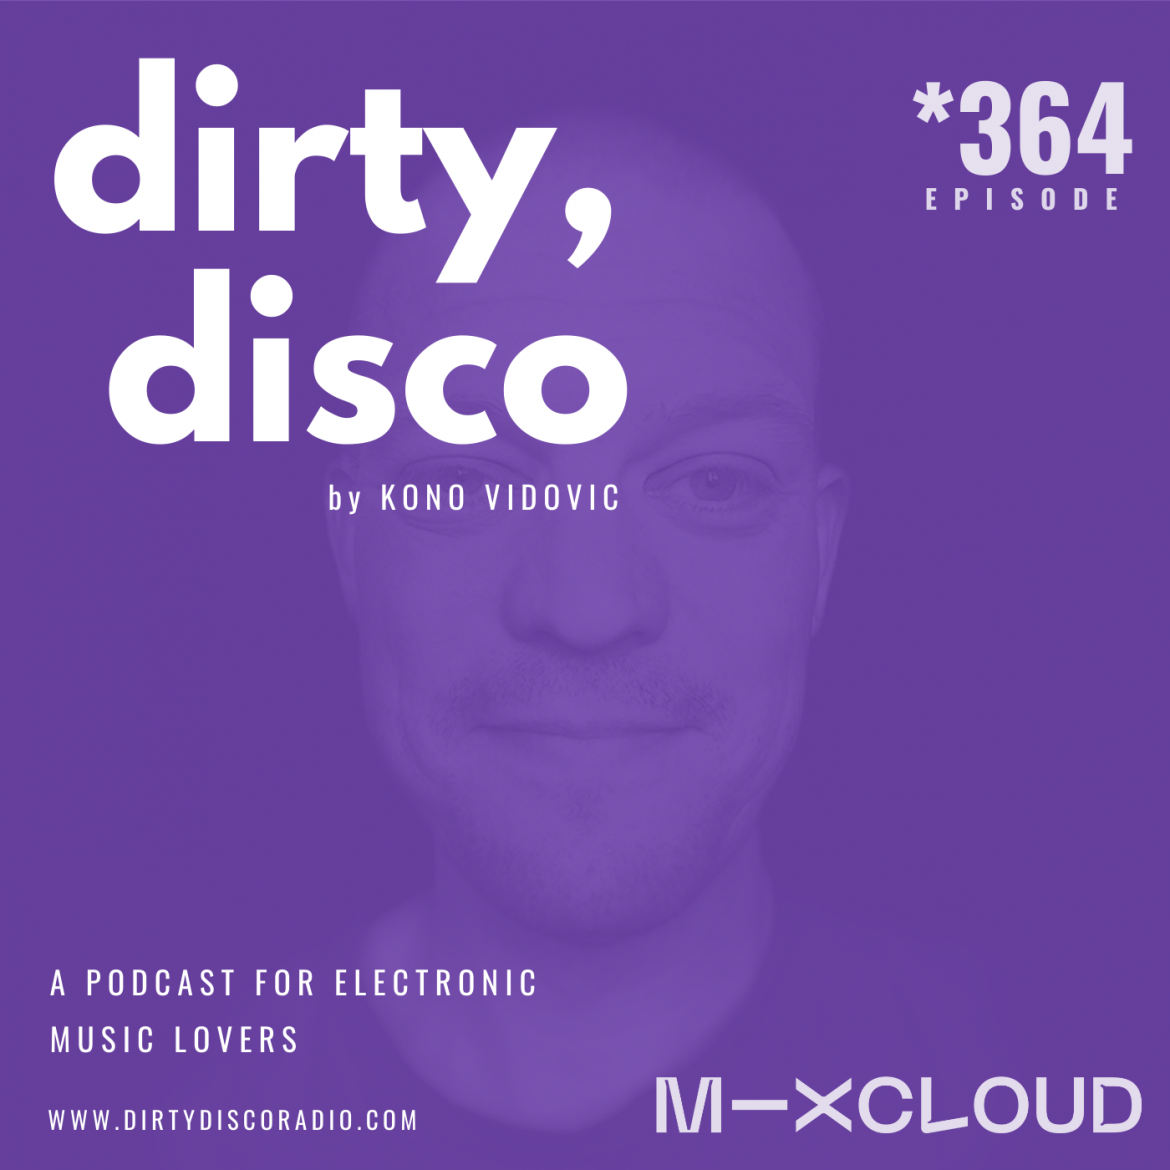 mixed playlist selection | Dirty Disco 364